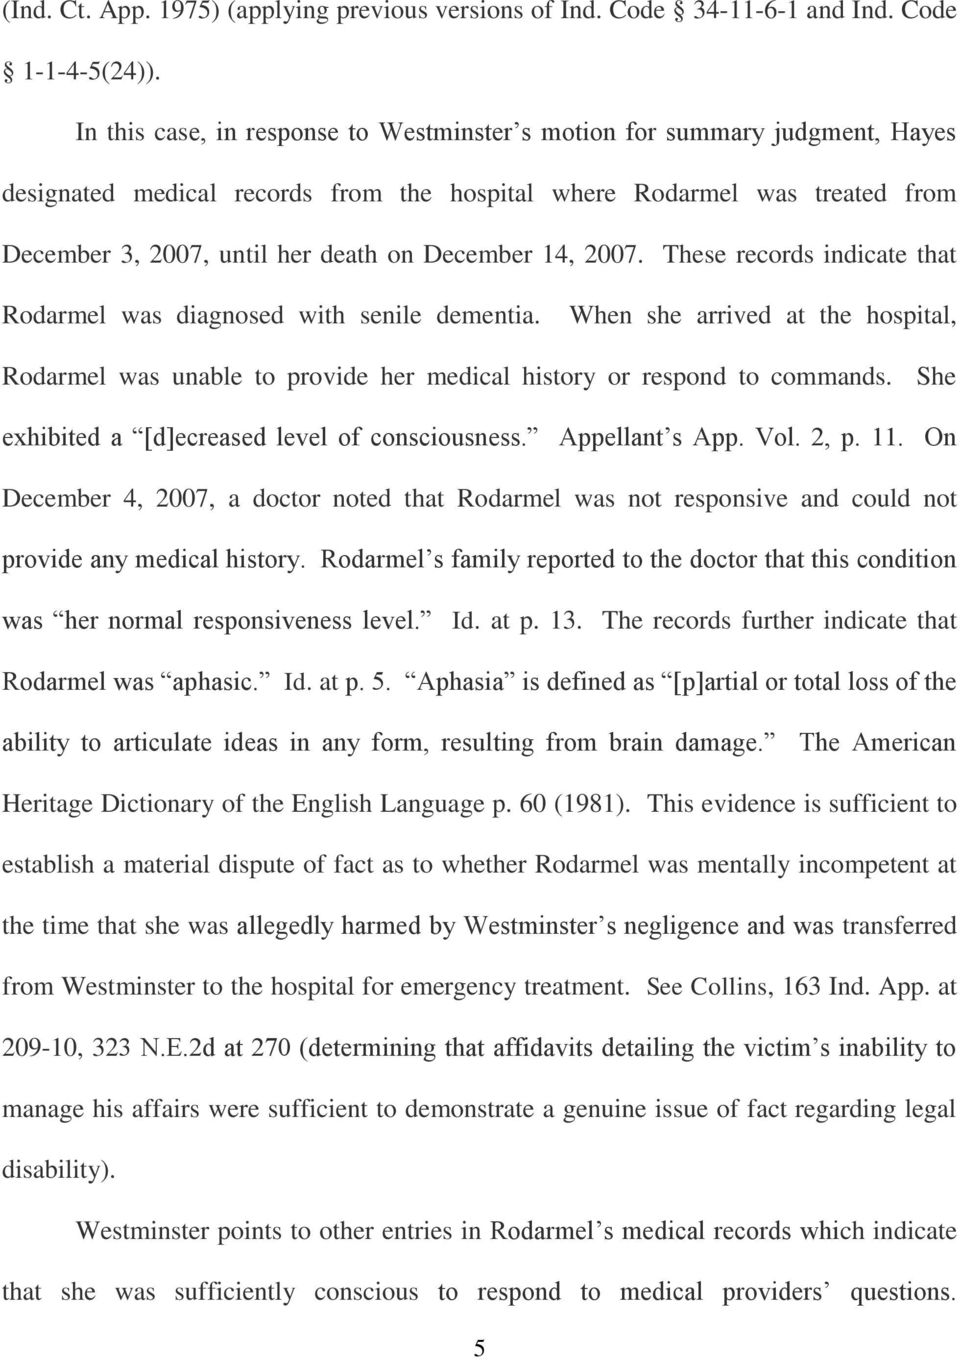 December 14, 2007. These records indicate that Rodarmel was diagnosed with senile dementia. When she arrived at the hospital, Rodarmel was unable to provide her medical history or respond to commands.